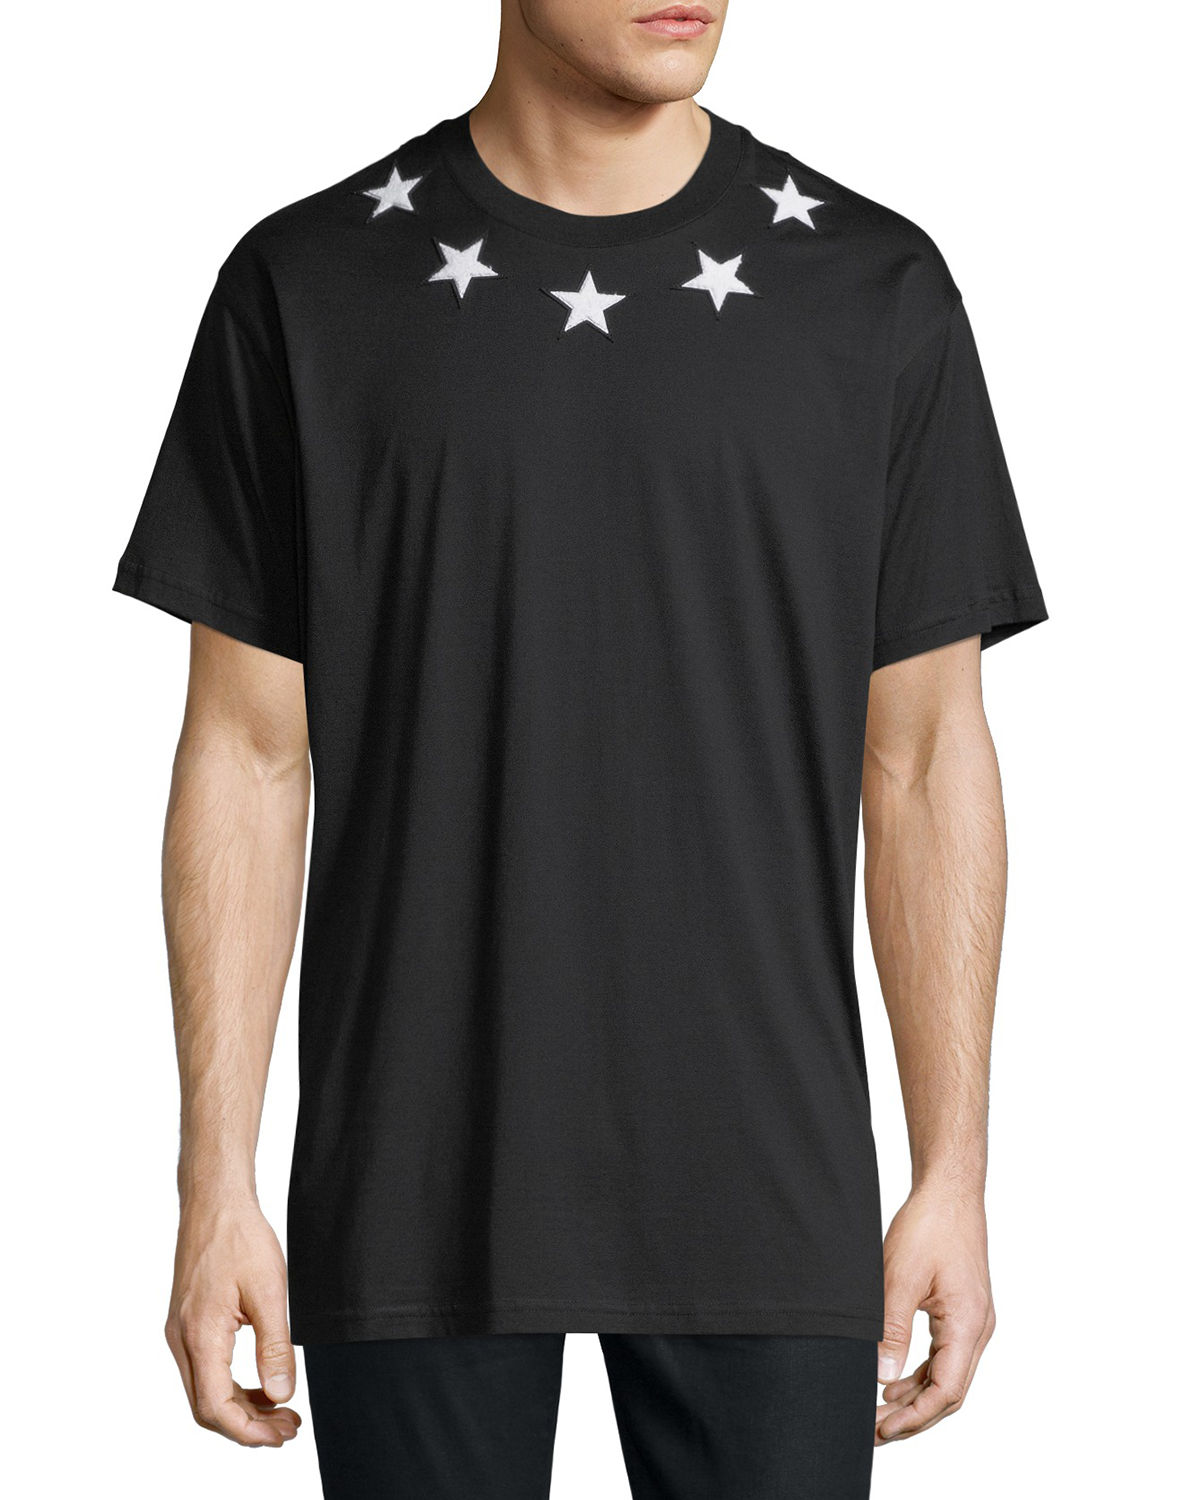 f84ae8863415 Givenchy Men s Star-Patch Crewneck T-Shirt